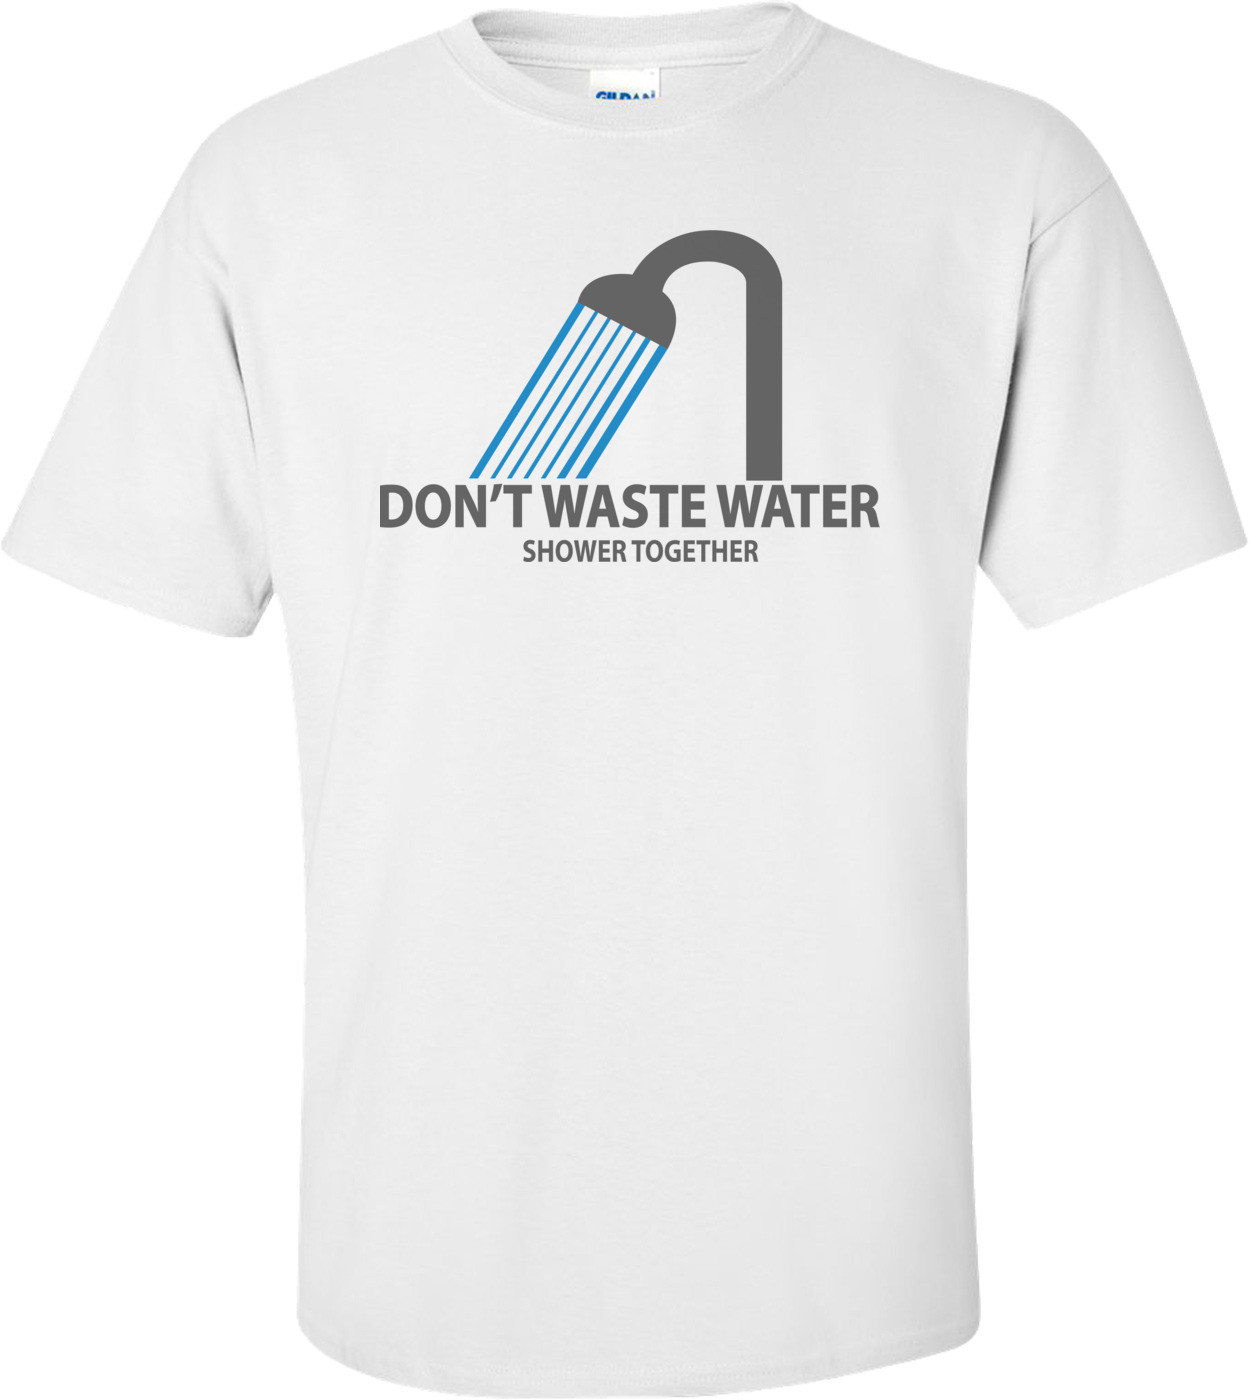 Don't Waste Water - Shower Together! T-shirt